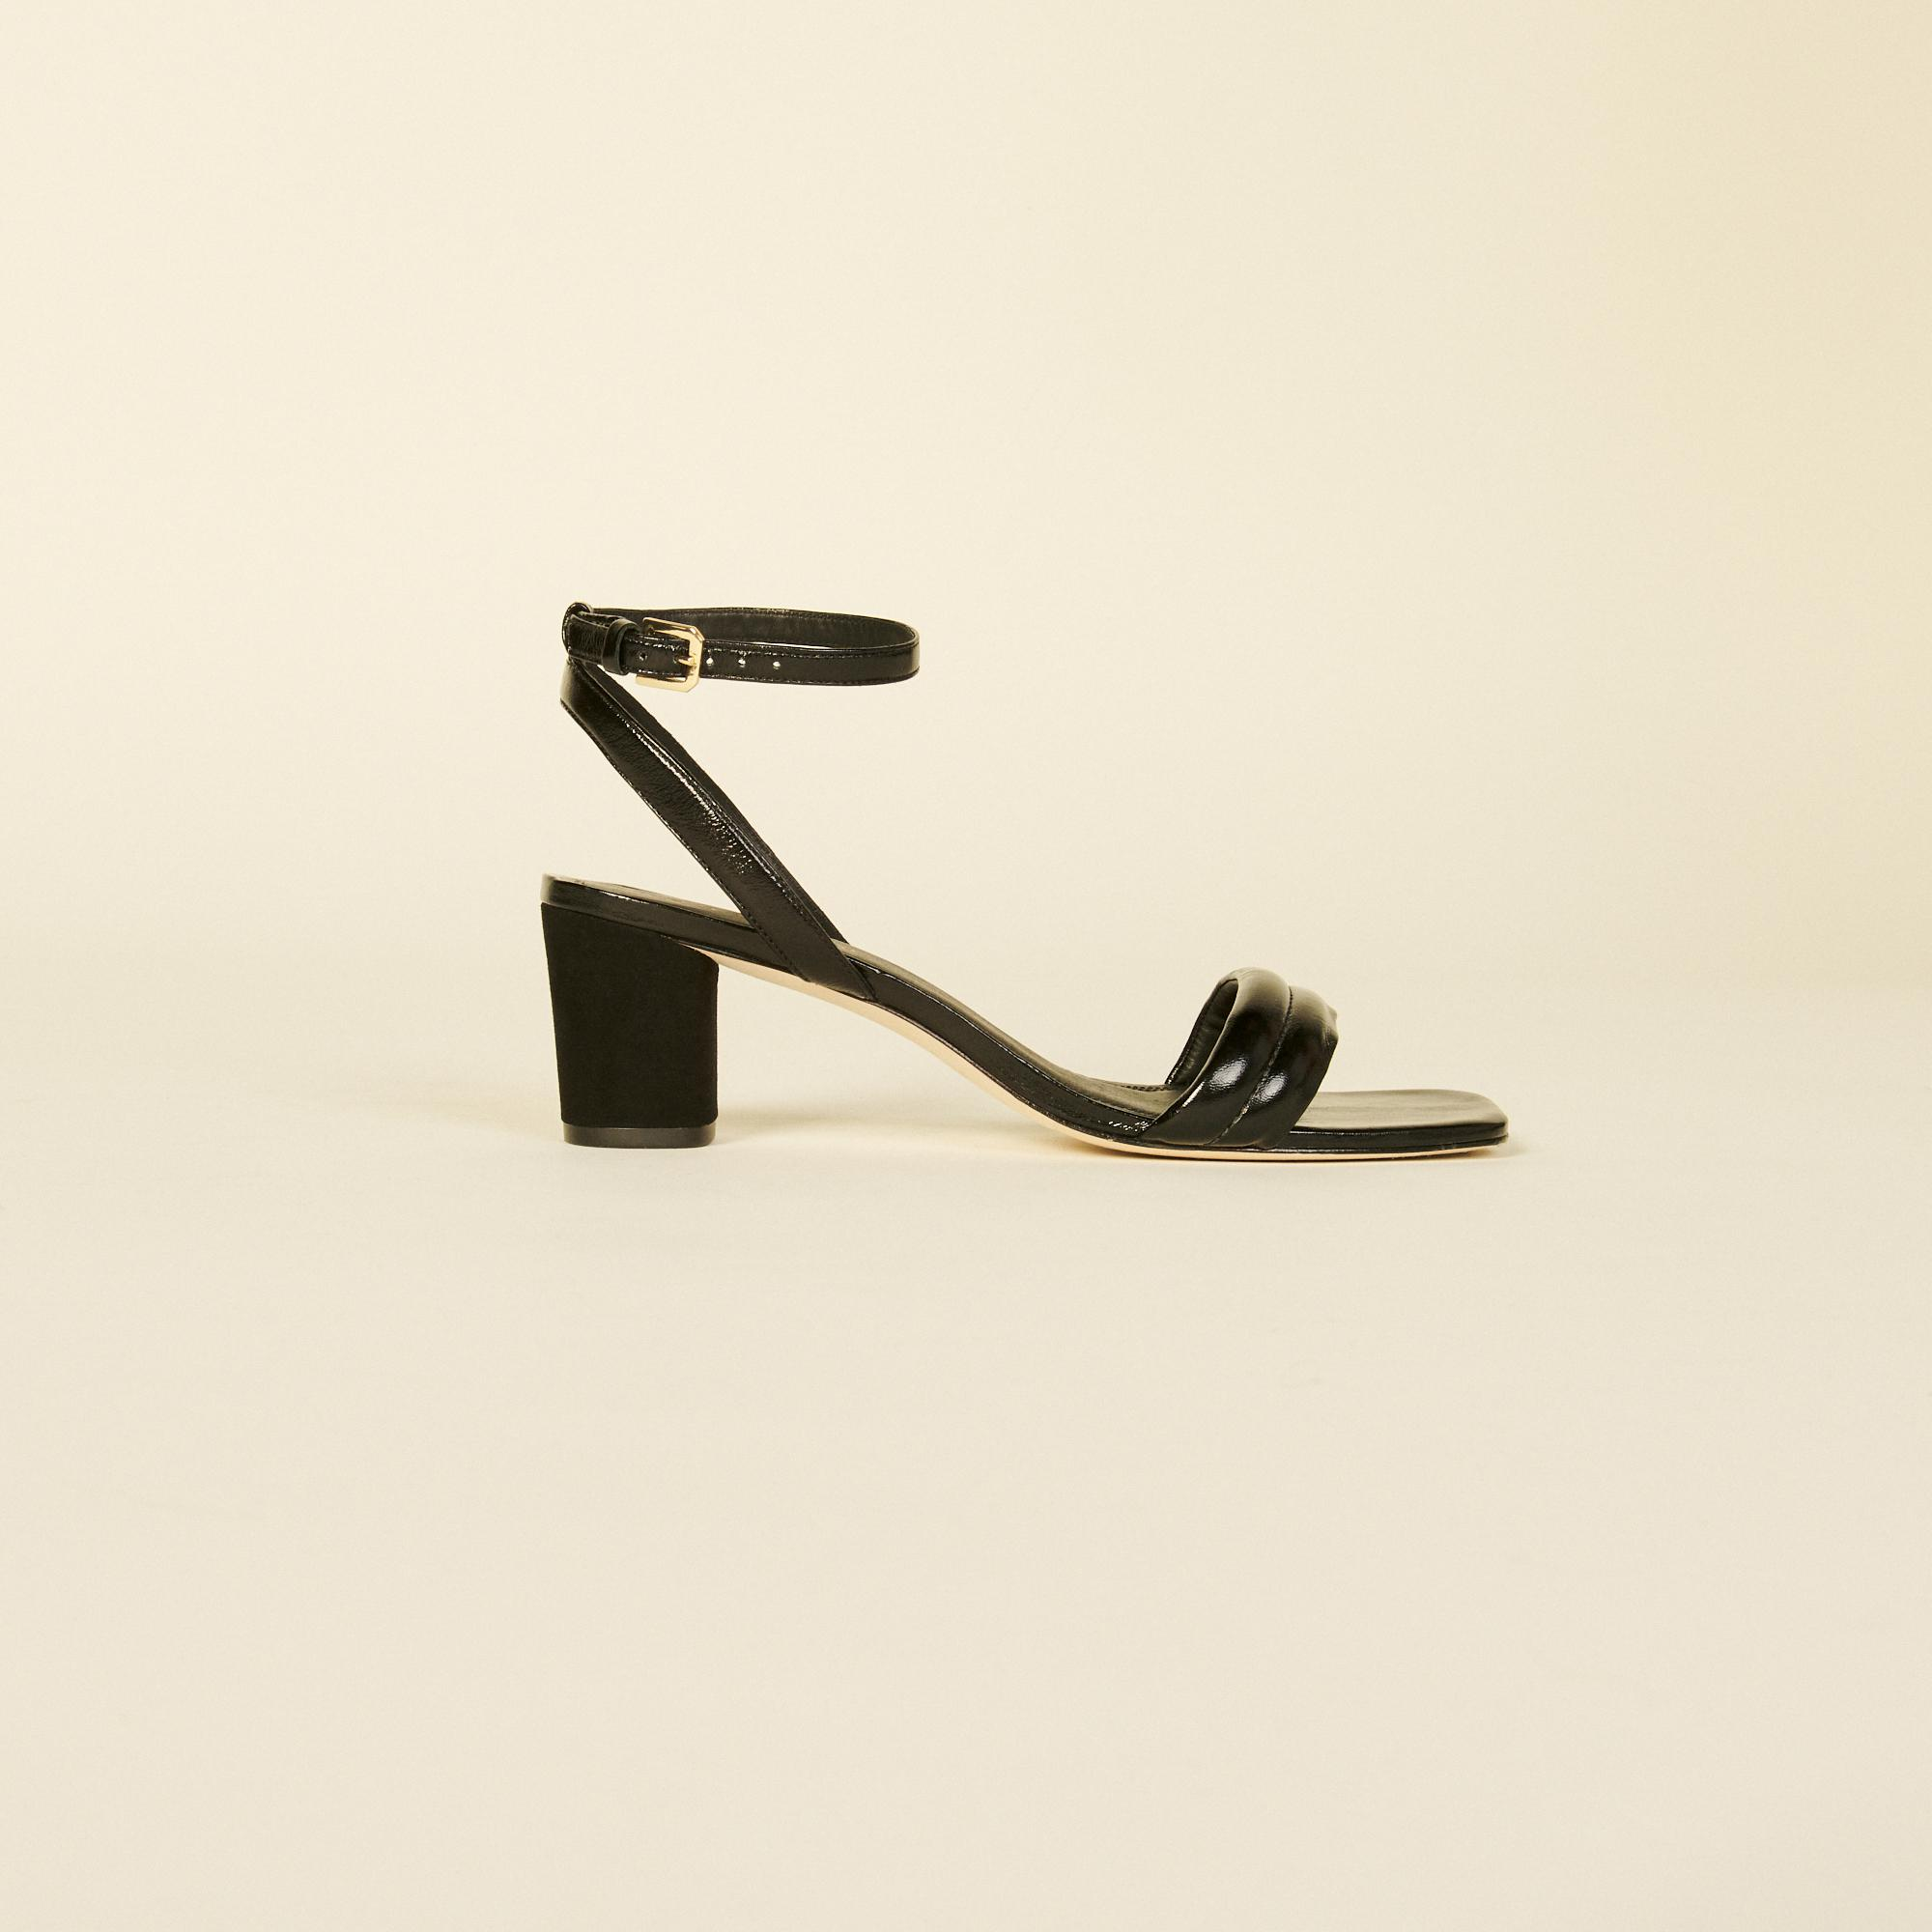 Patent leather sandal with high heel